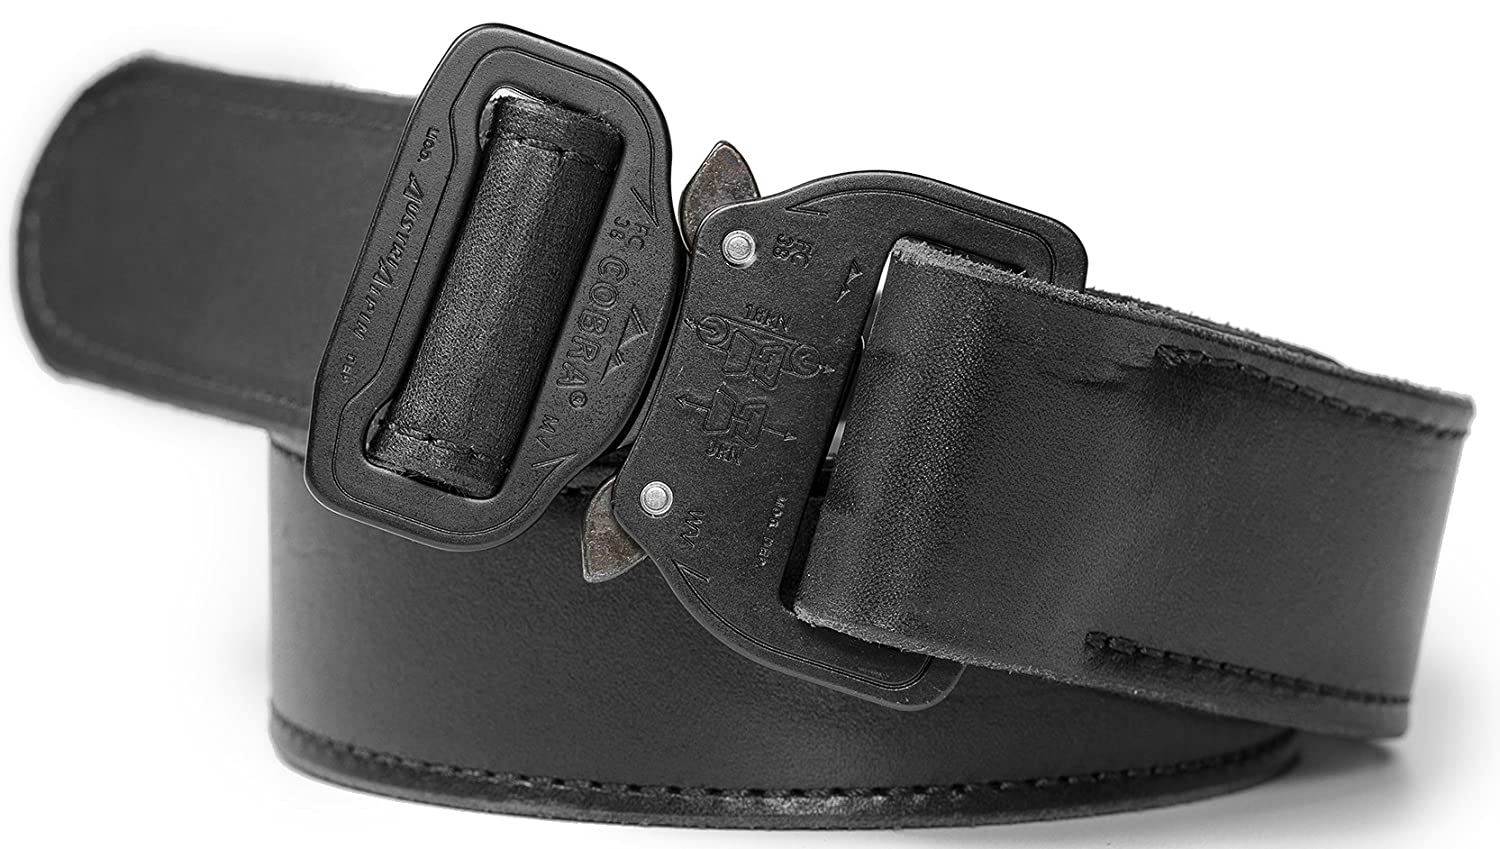 Cobra Belt Men/'s Leather Tactical Belt w//Heavy Duty Cobra Quick Release Buckle